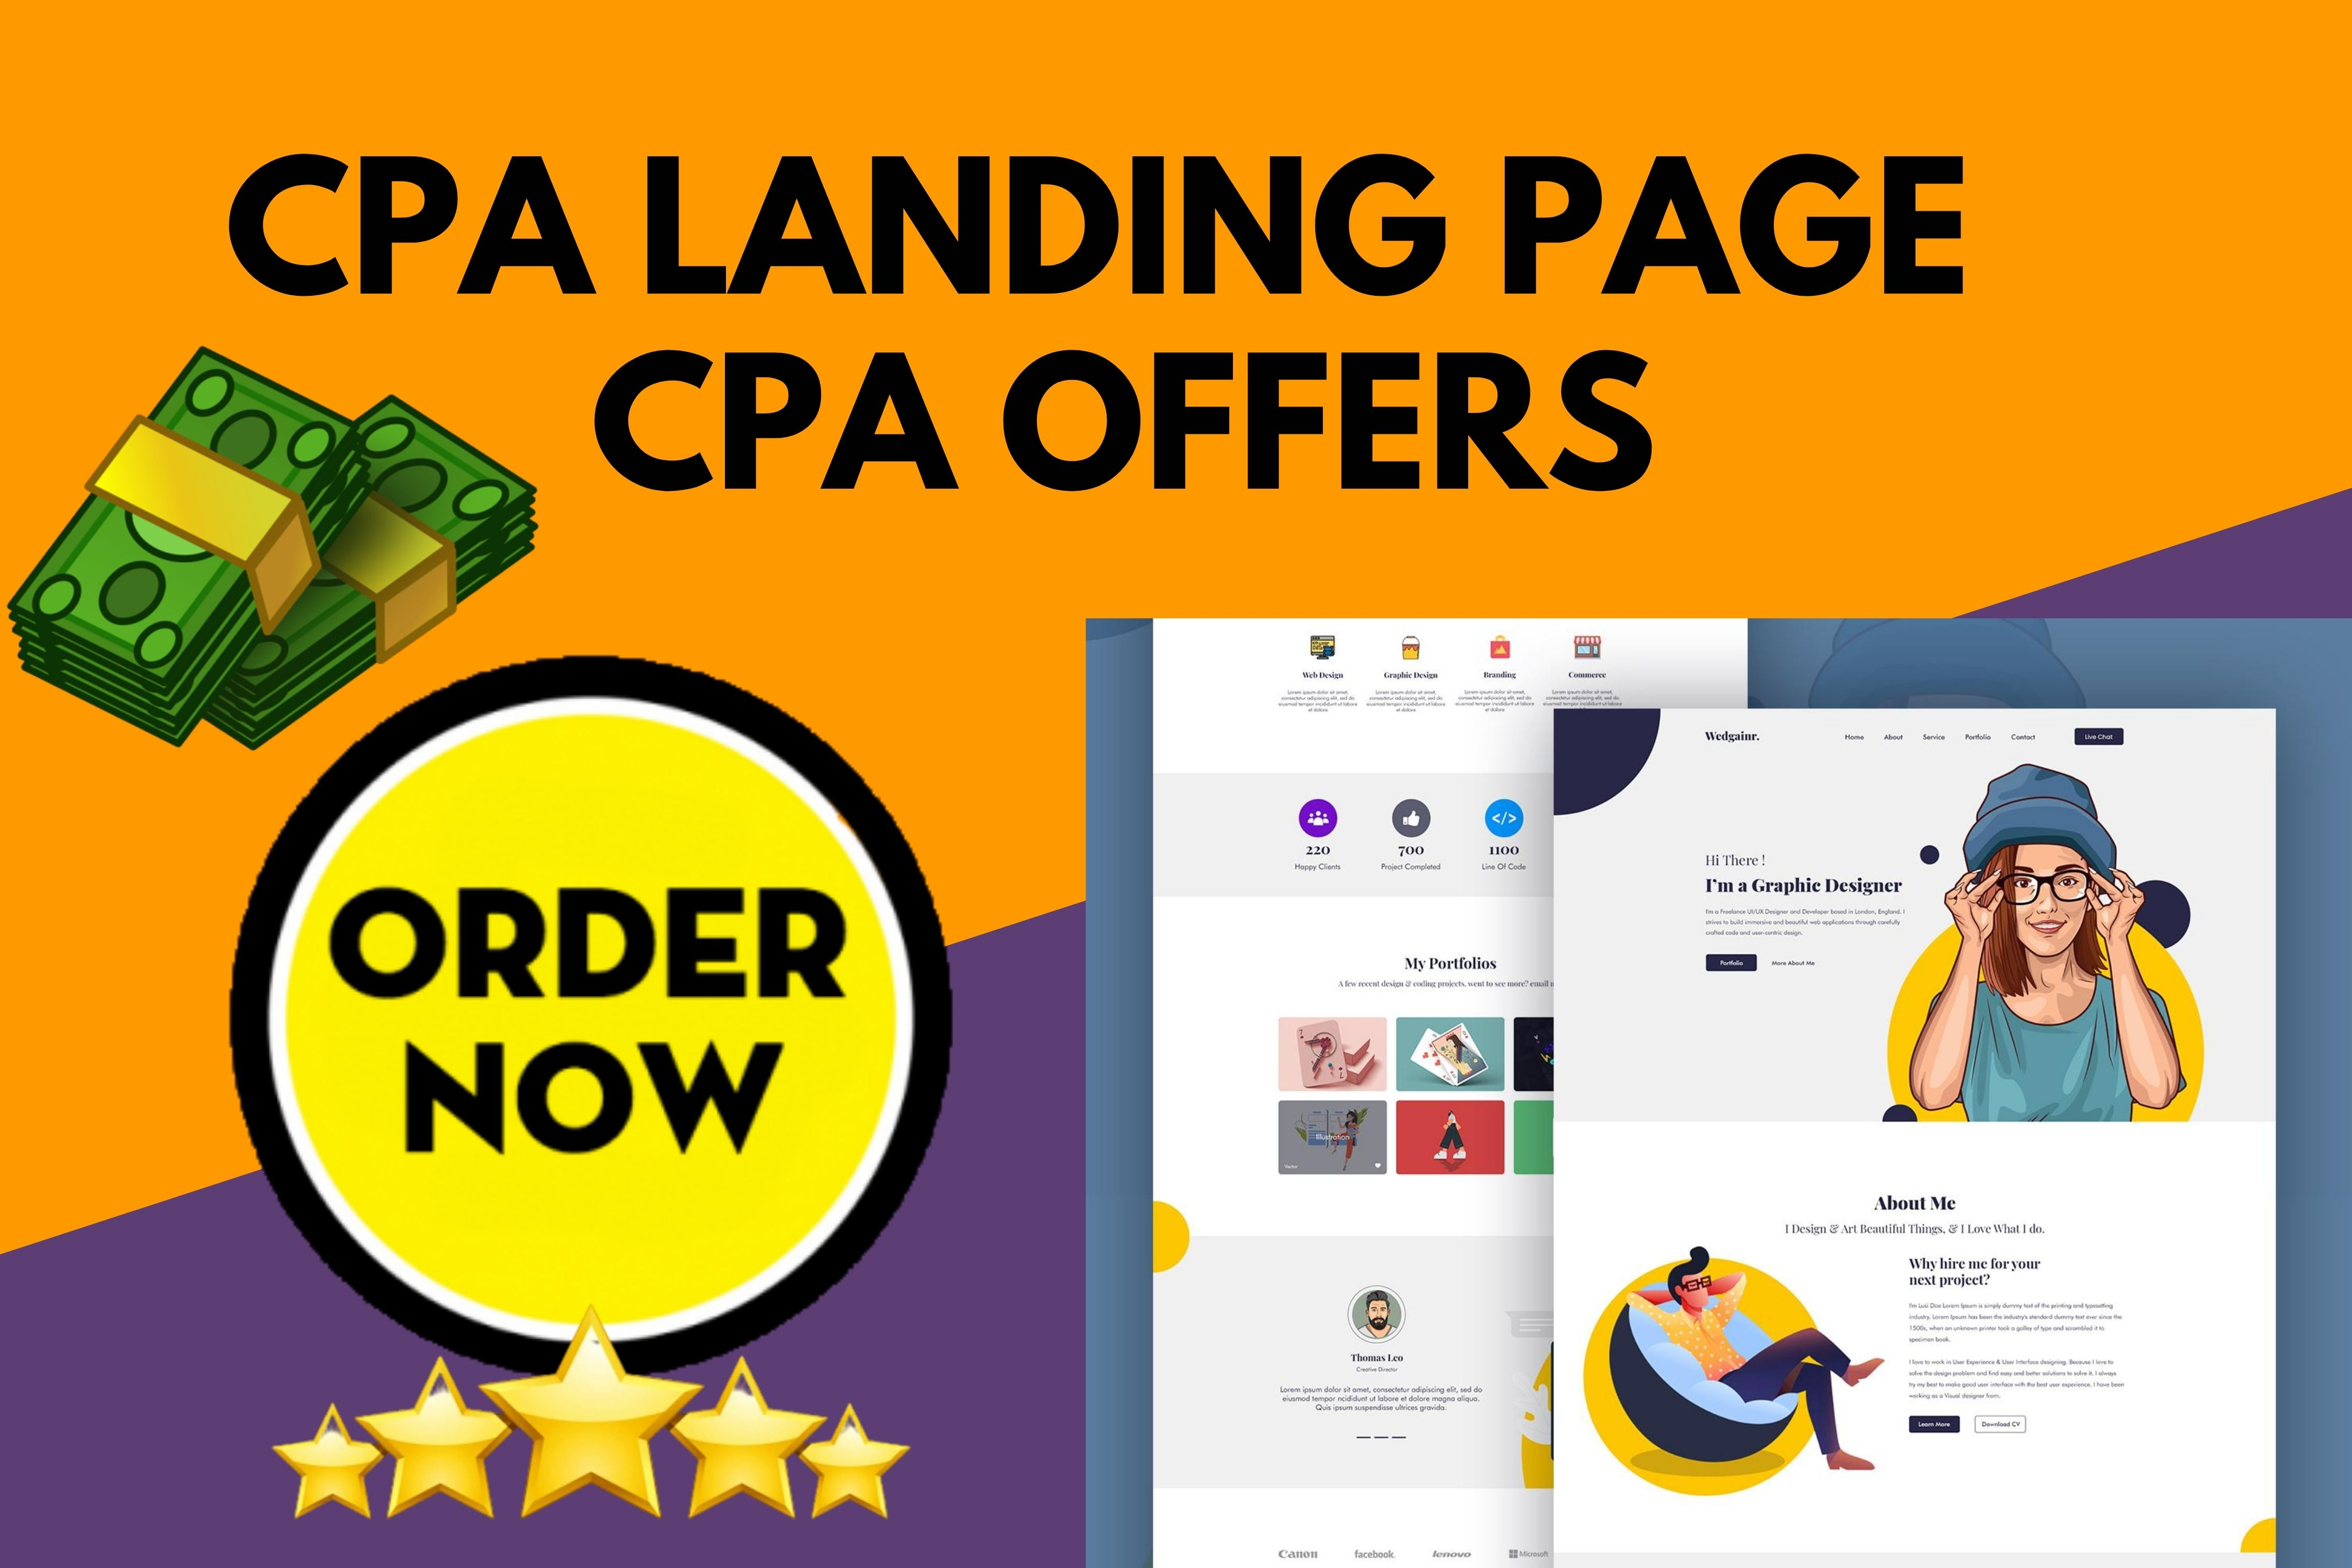 I will design responsive and attractive CPA landing page for CPA Marketing